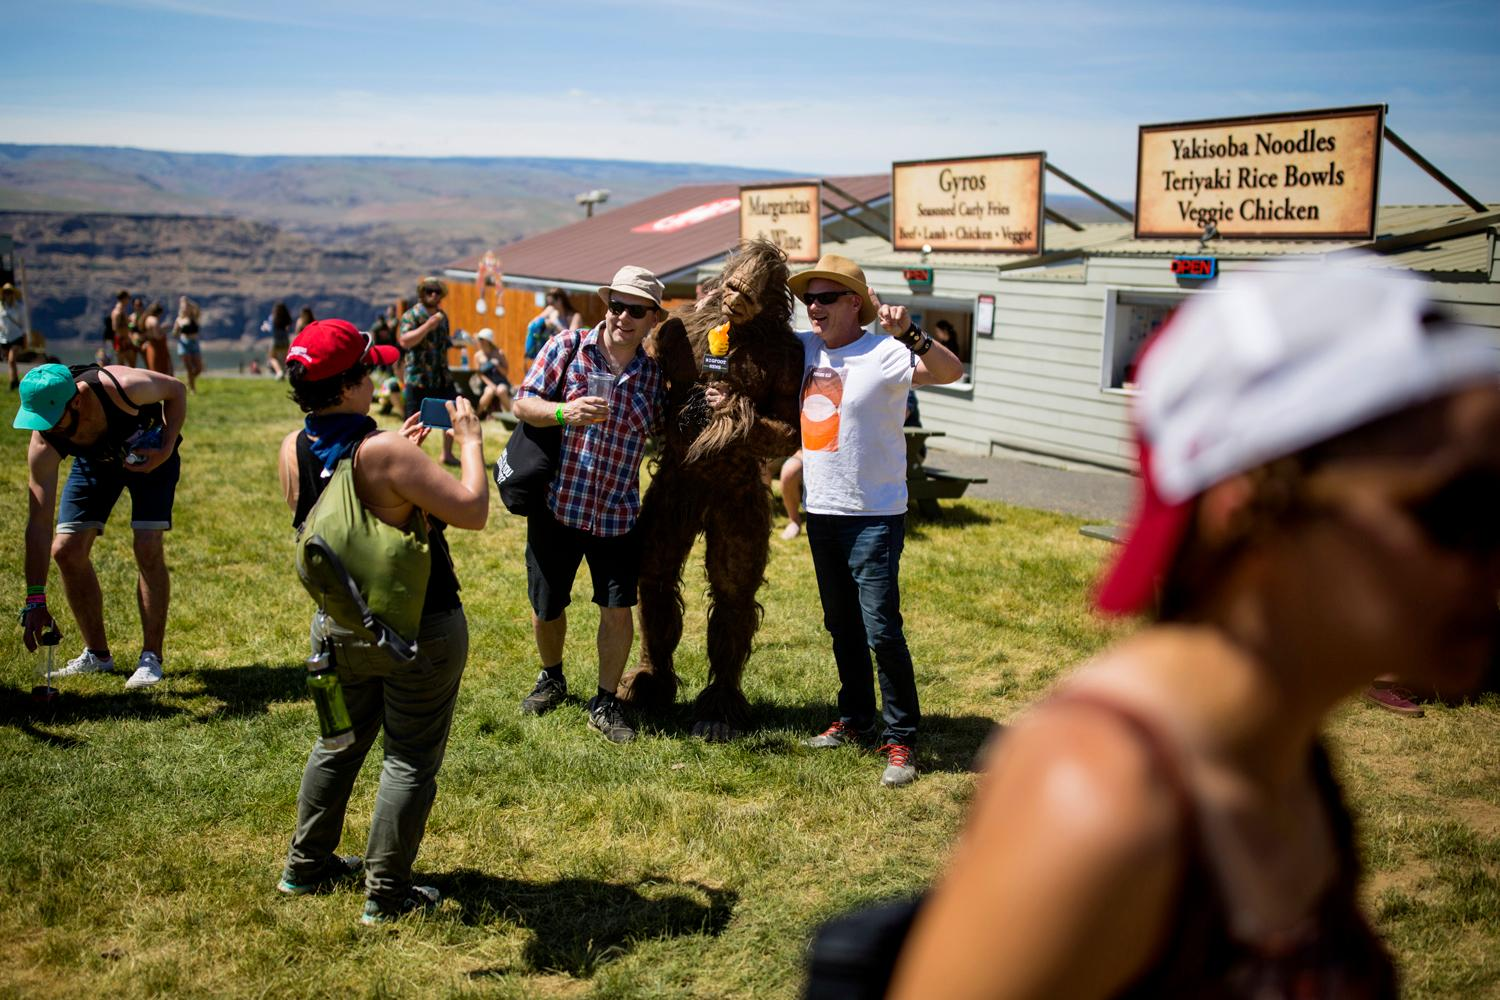 Another day down at the annual Sasquatch! Music Festival with a killer acts by Modest Mouse, Spoon, and Grizzly Bear. The three-day festival runs throughout the Memorial Day Weekend, from May 25-27, 2018. (Sy Bean / Seattle Refined)